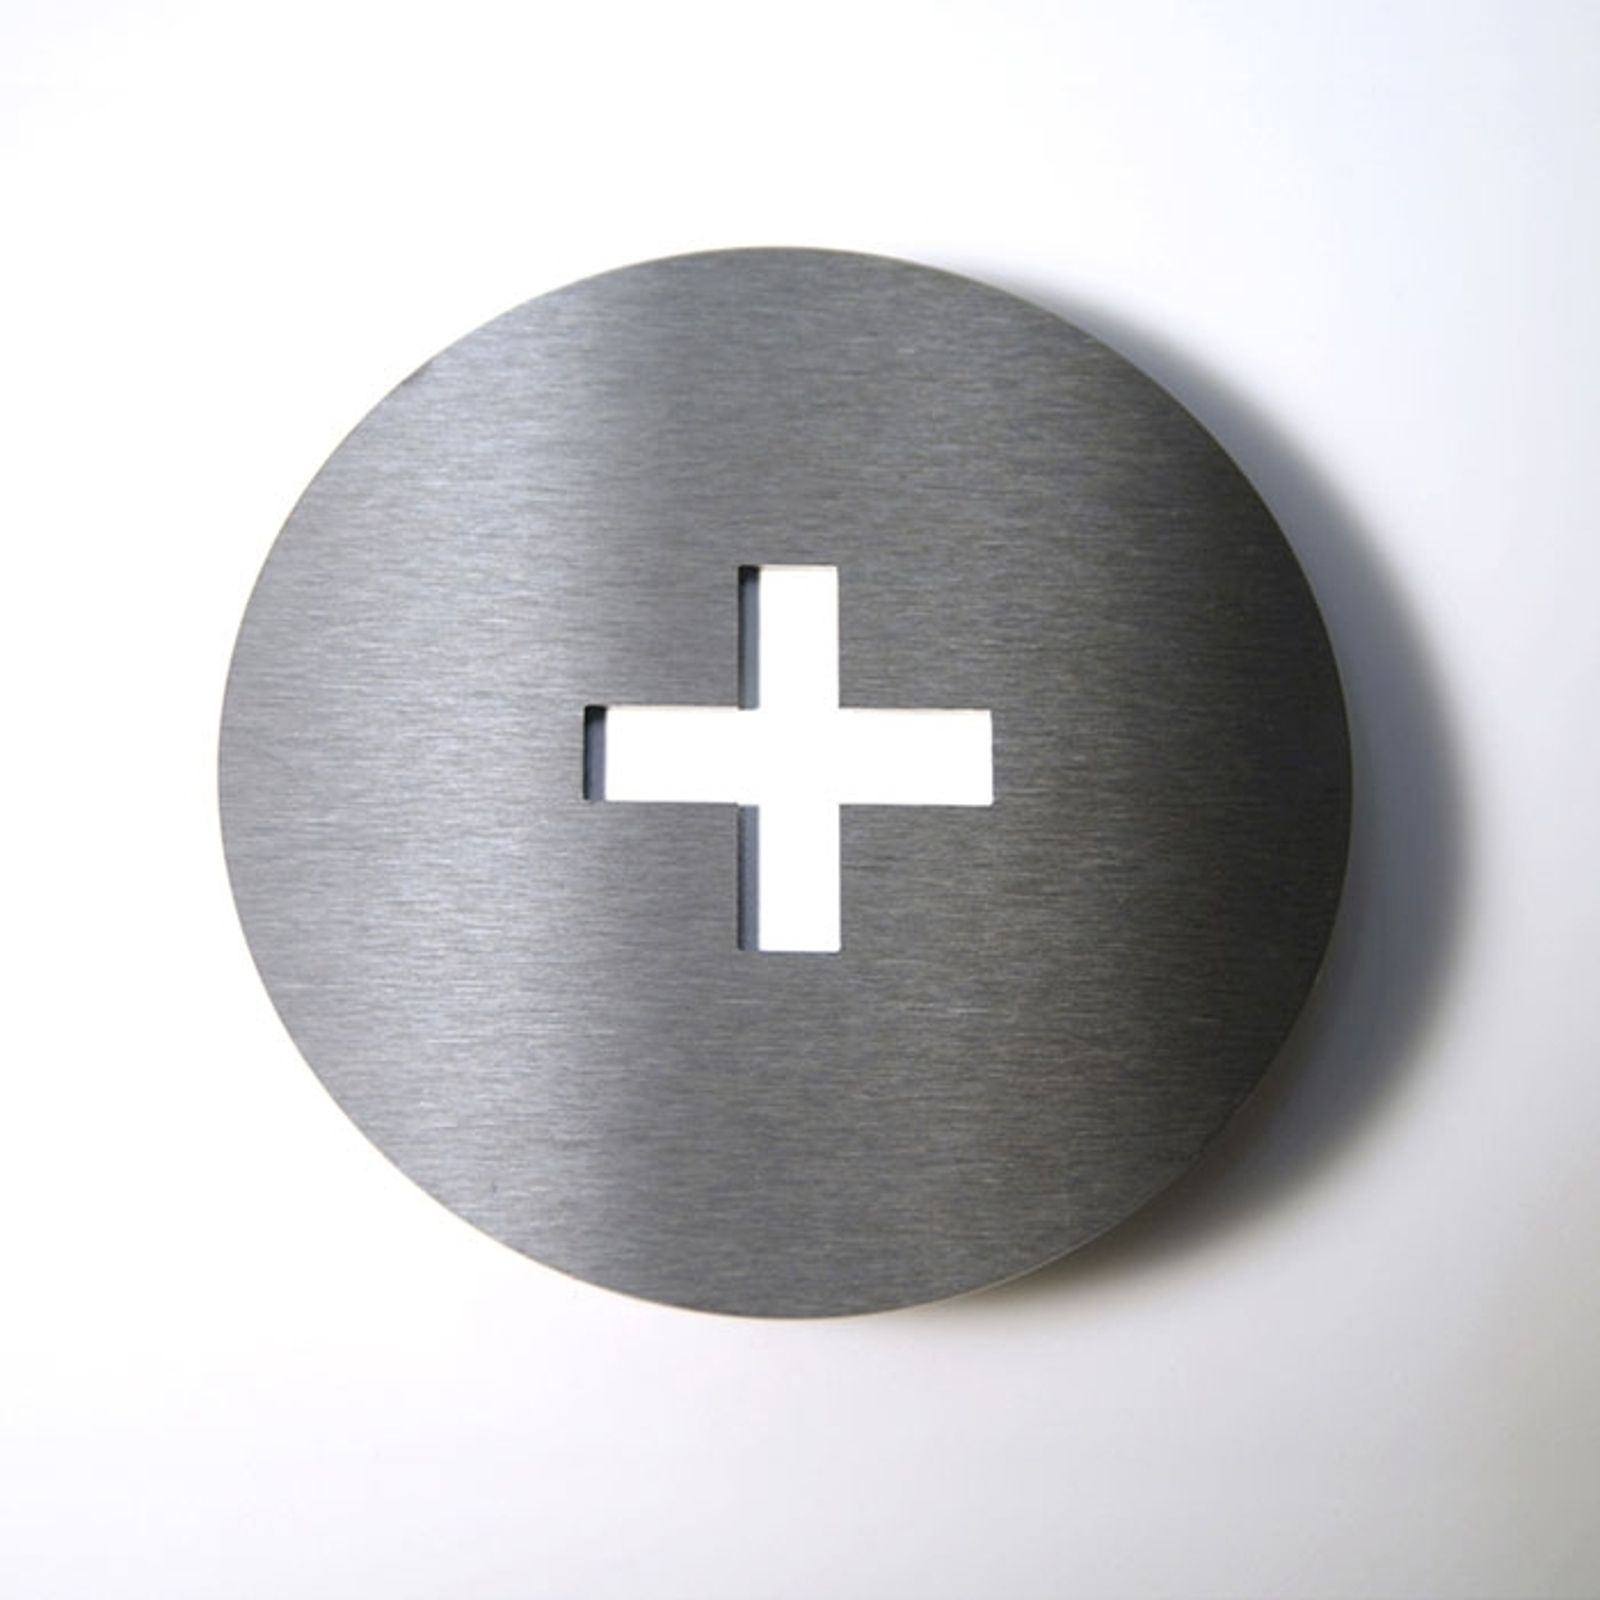 Stainless steel house number Round_1057089_1